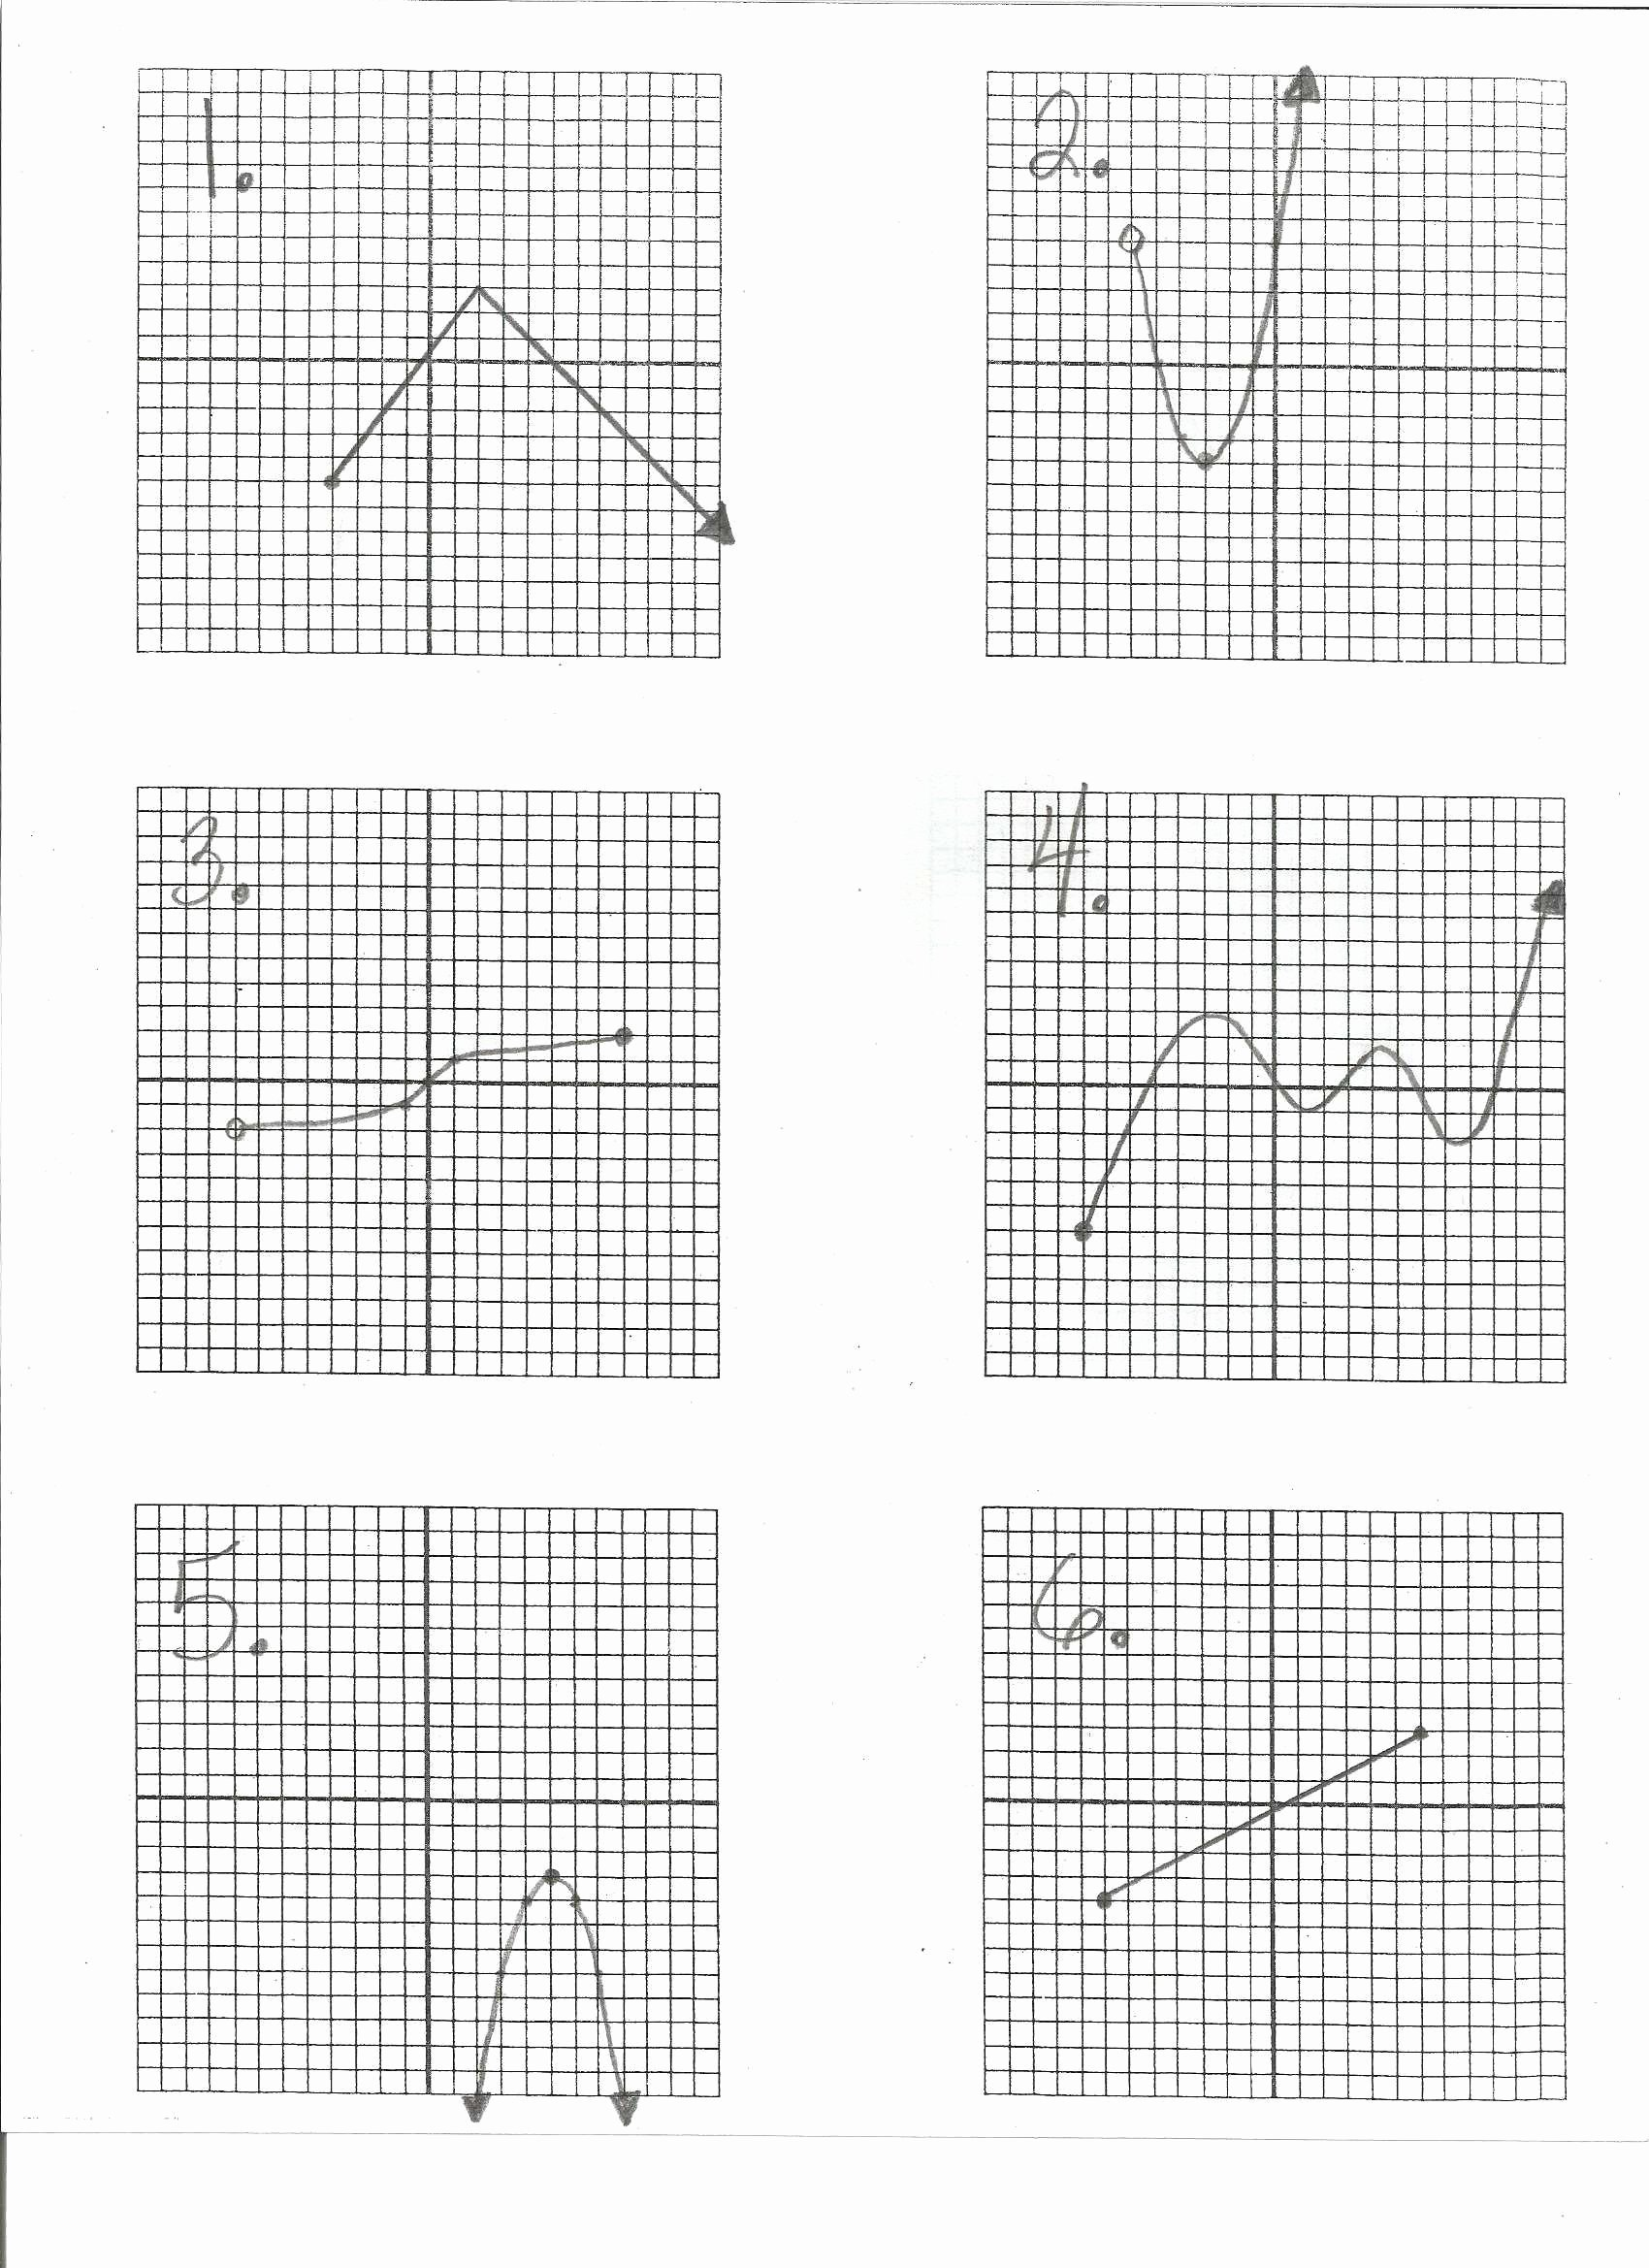 Domain and Range Worksheet Answers Best Of Domain and Range Graph Worksheet Answers Fresh 10 Unique